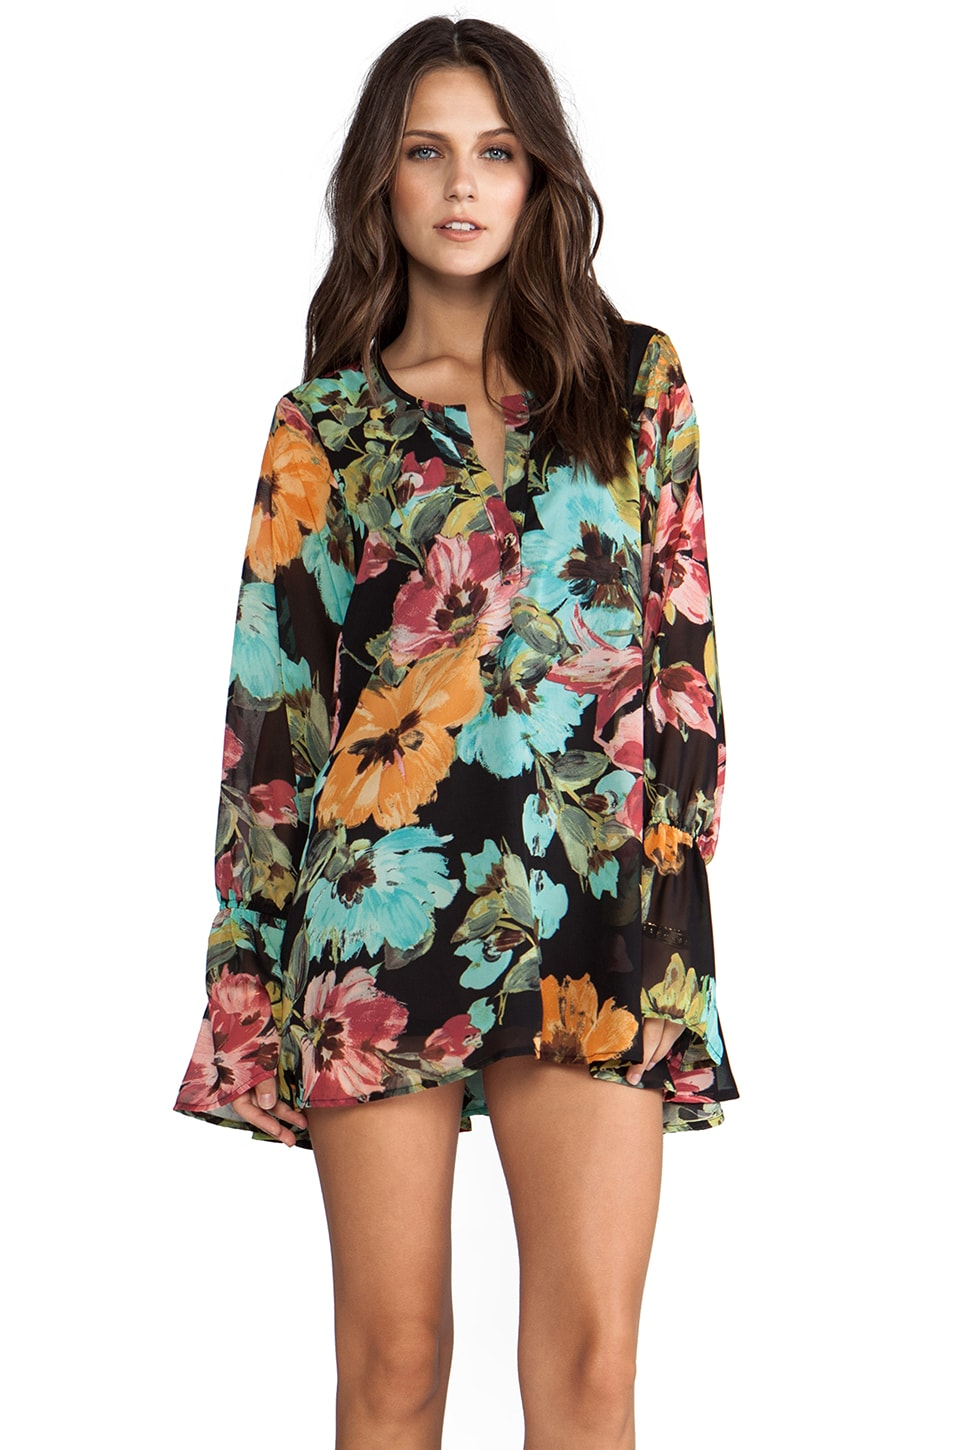 Show Me Your Mumu Perveen Pirate Tunic in Flower Paint